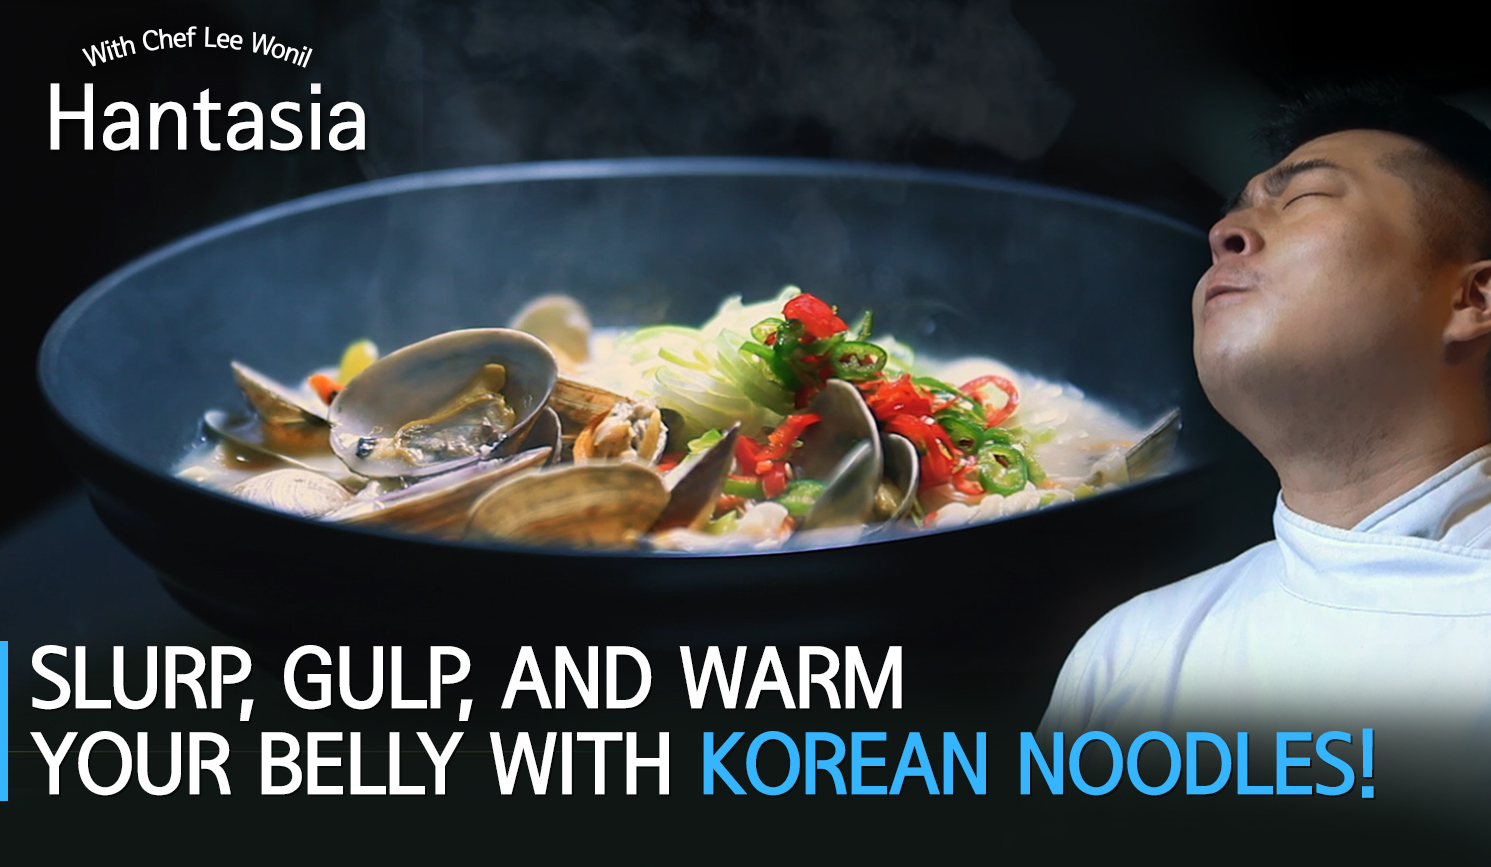 SLURP, GULP, and warm your belly with Korean noodles!🍜[Hantasia]